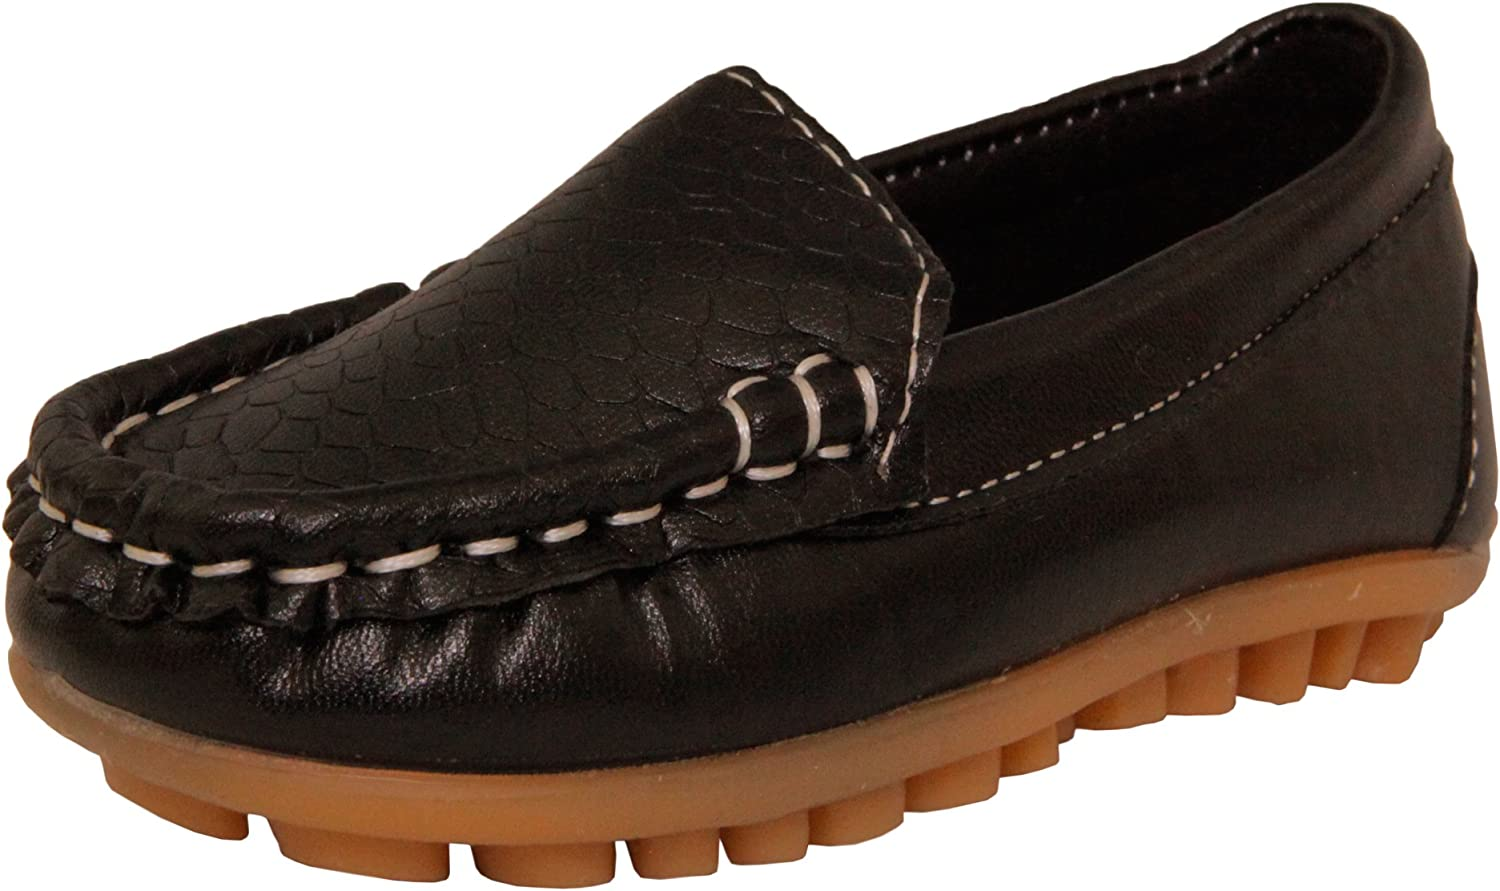 WUIWUIYU Boys Girls Toddlers Casual Cute Suede Slip On Penny Loafers Moccasins Shoes